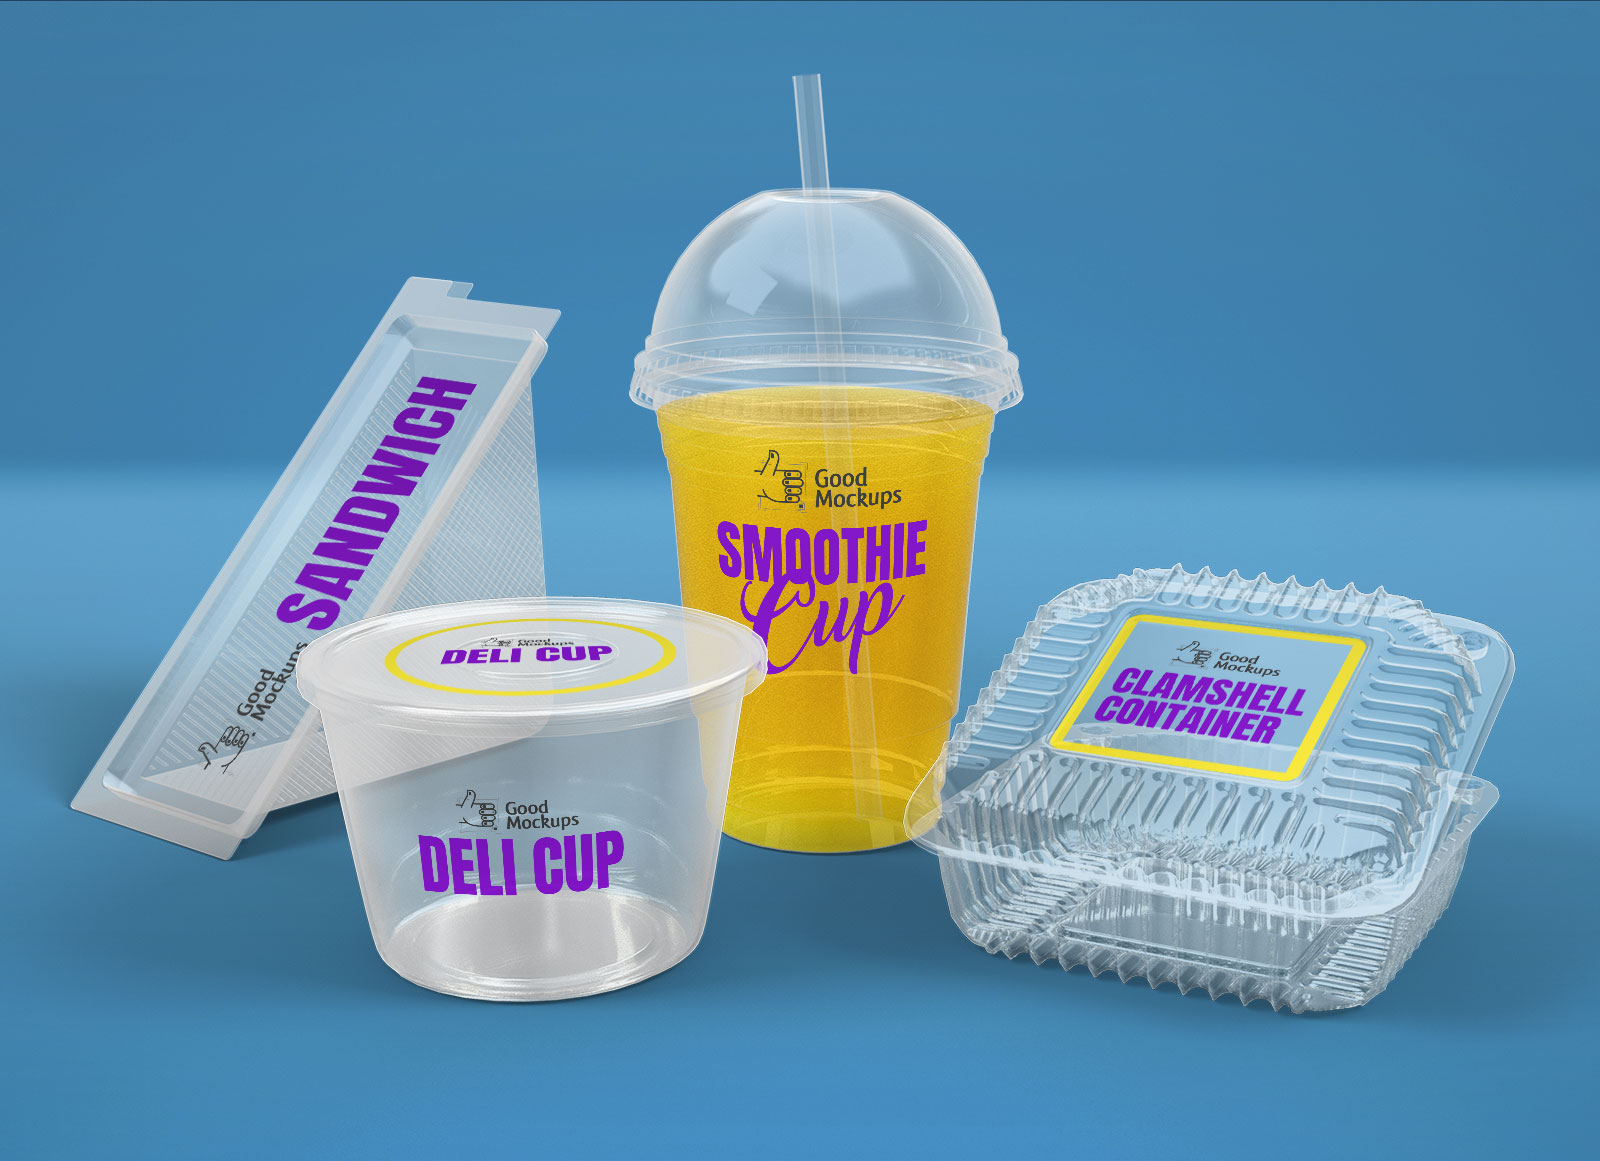 Free-Transparent-Sandwich-Box,-Clamshell-Container,-Deli-&-Smoothie-Cup-Packaging-Mockup-PSD